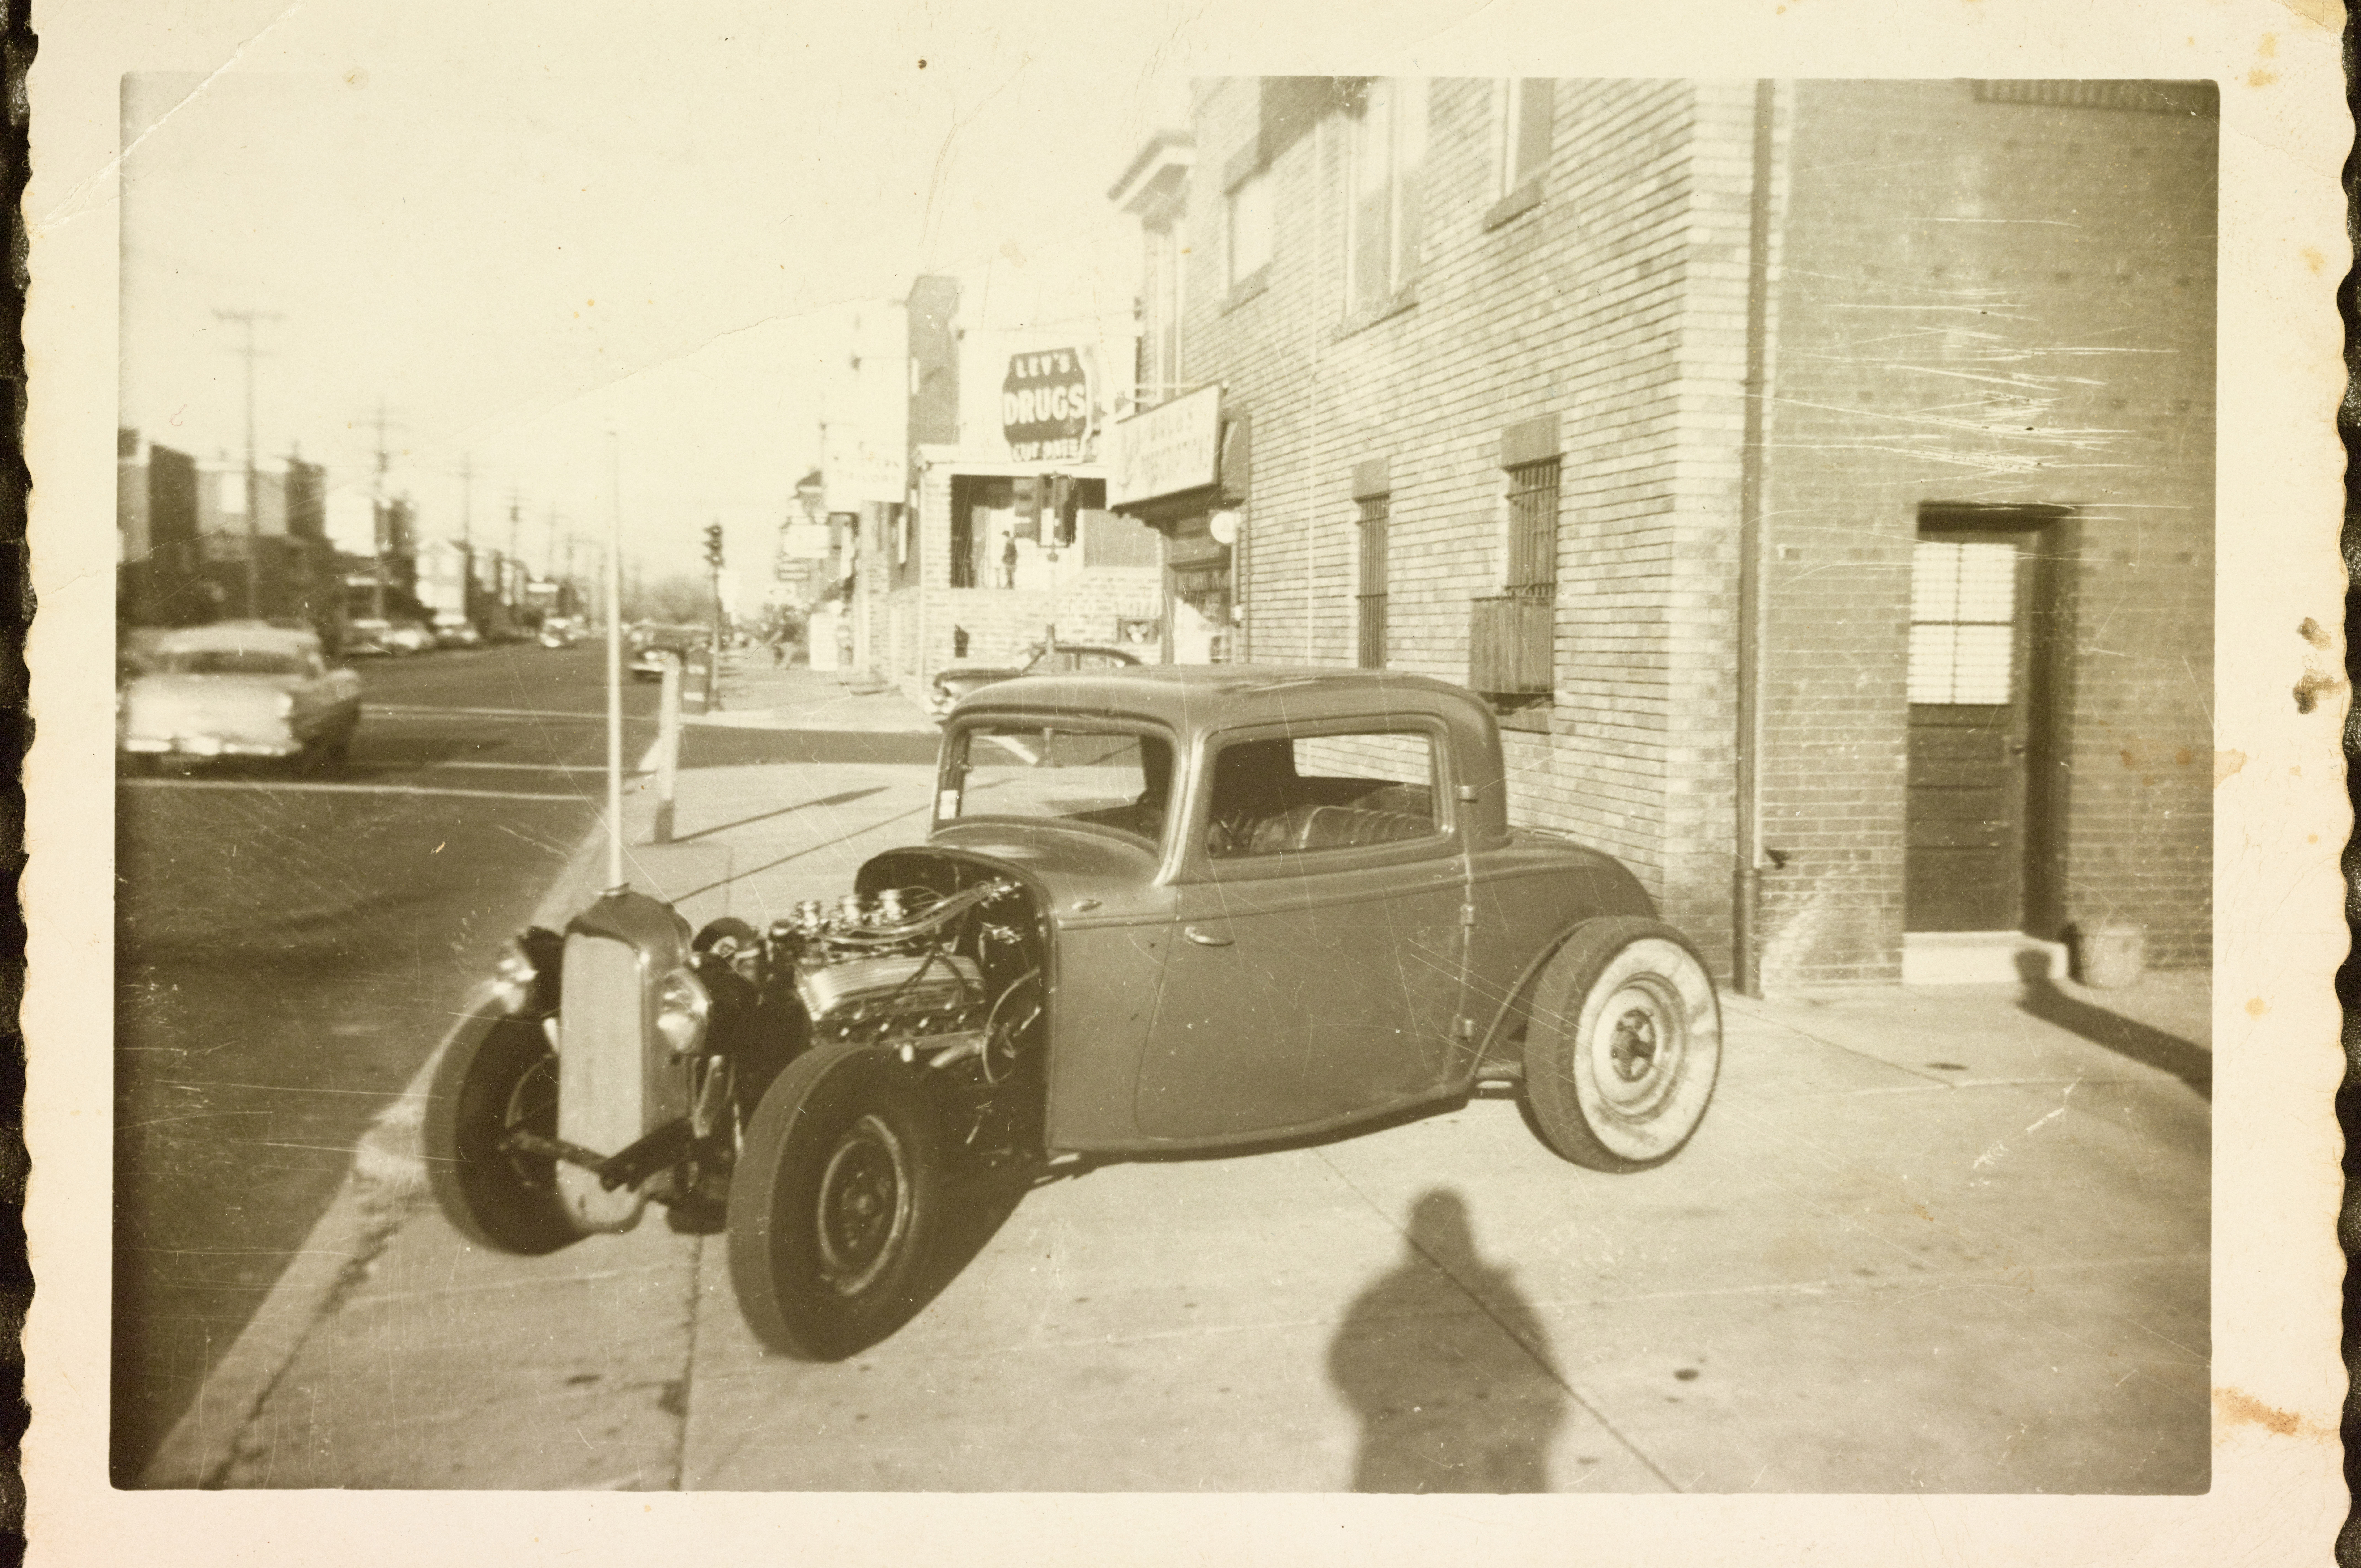 Bill (that's his shadow on the sidewalk) shot this picture of his coupe in the alley behind Lev's drug store in Philadelphia in 1952. The lighter tone of the coupe's body would indicate it's now wearing its purple paint. The Cad engine is one of several Bill ran in the car.